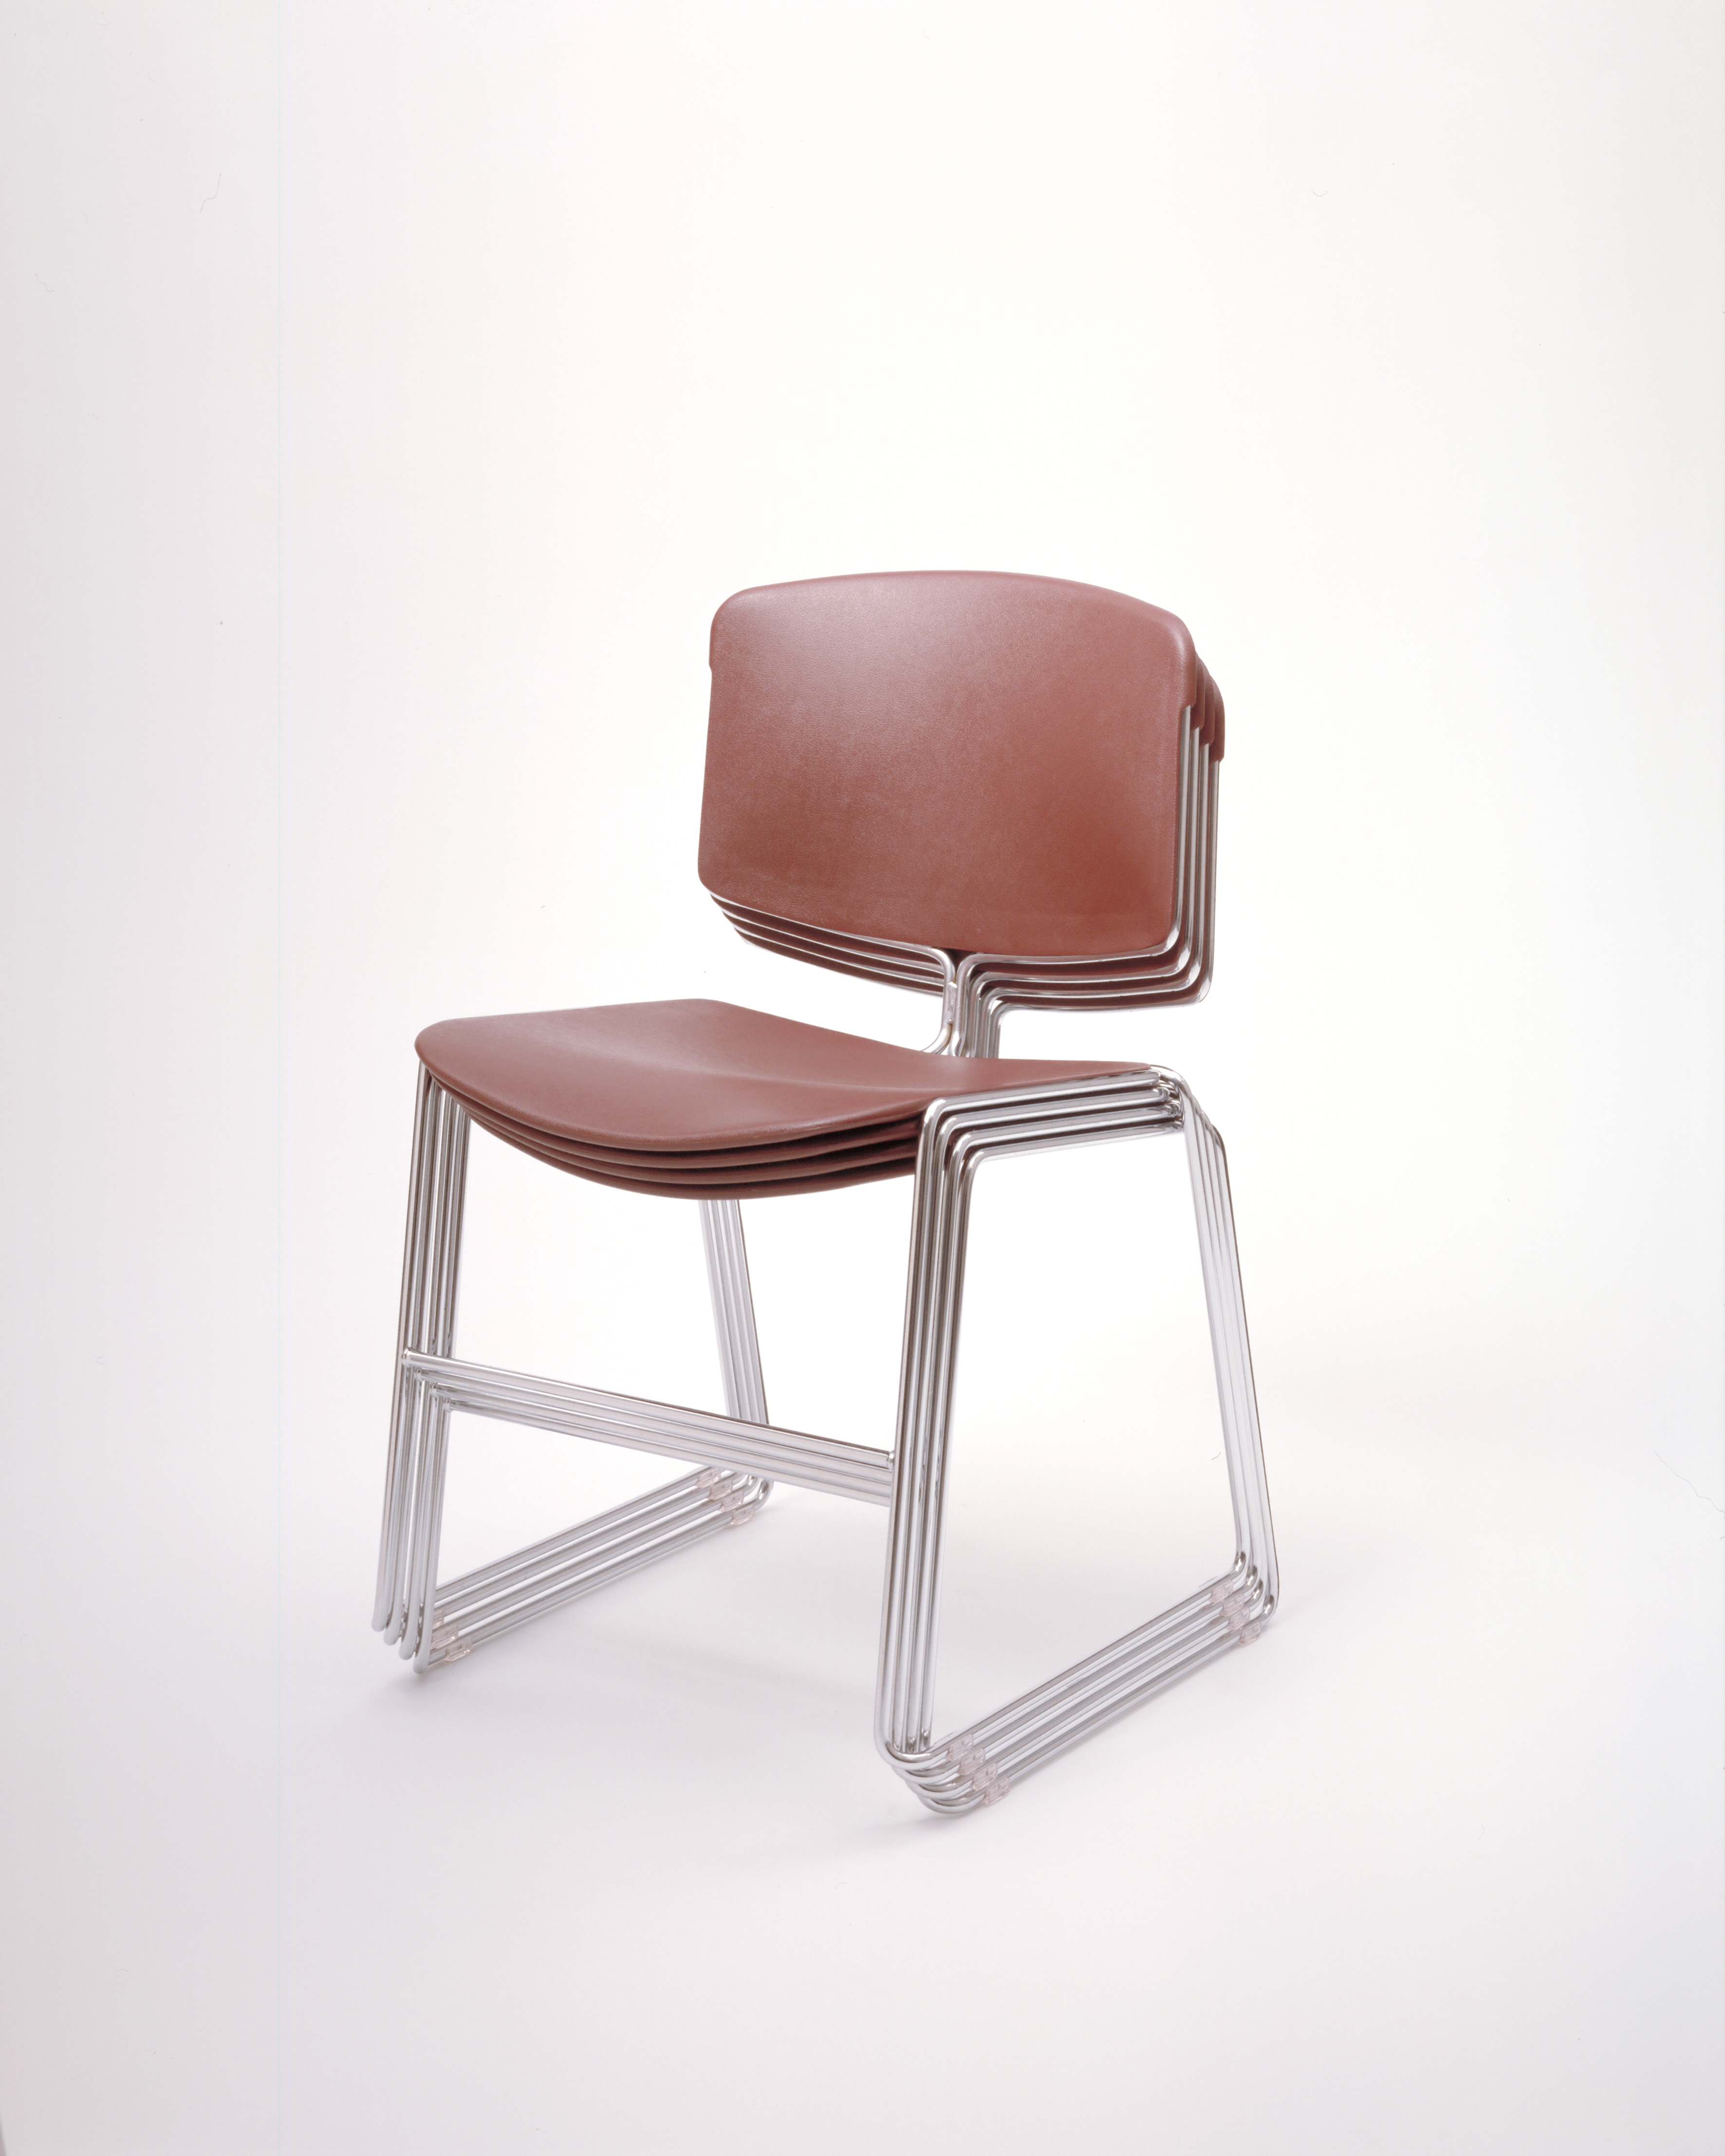 Max-Stacker chair